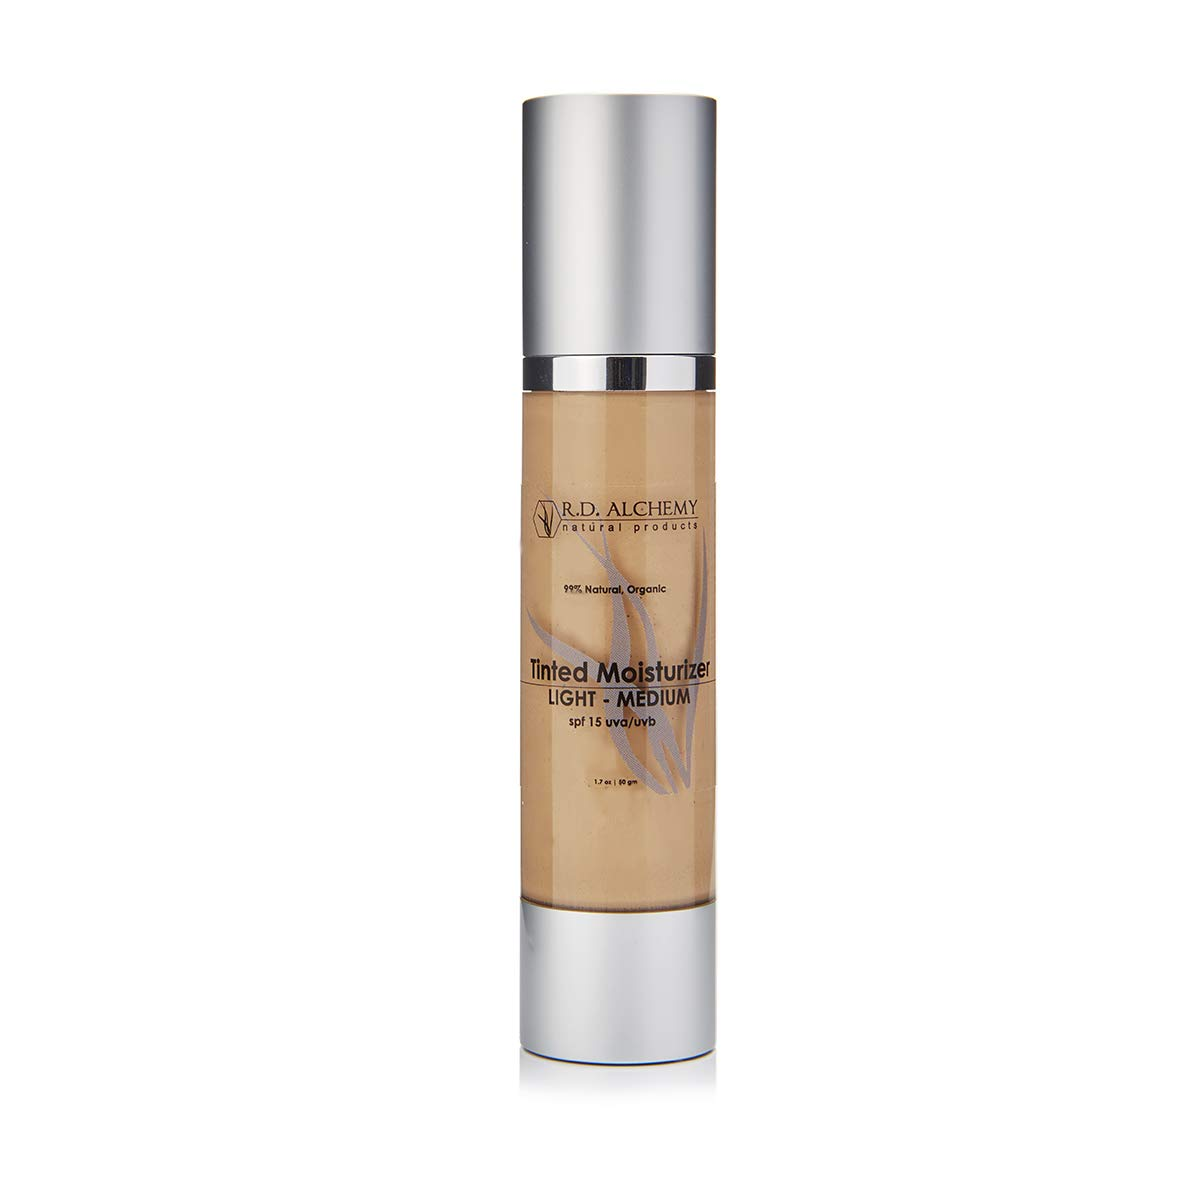 99% Natural & Organic Tinted Moisturizer with SPF. Best BB and CC cream for Normal to Dry Skin needing Light Coverage, Reduced Pore Size, and Less Acne Breakouts. LIGHT-MEDIUM Shade